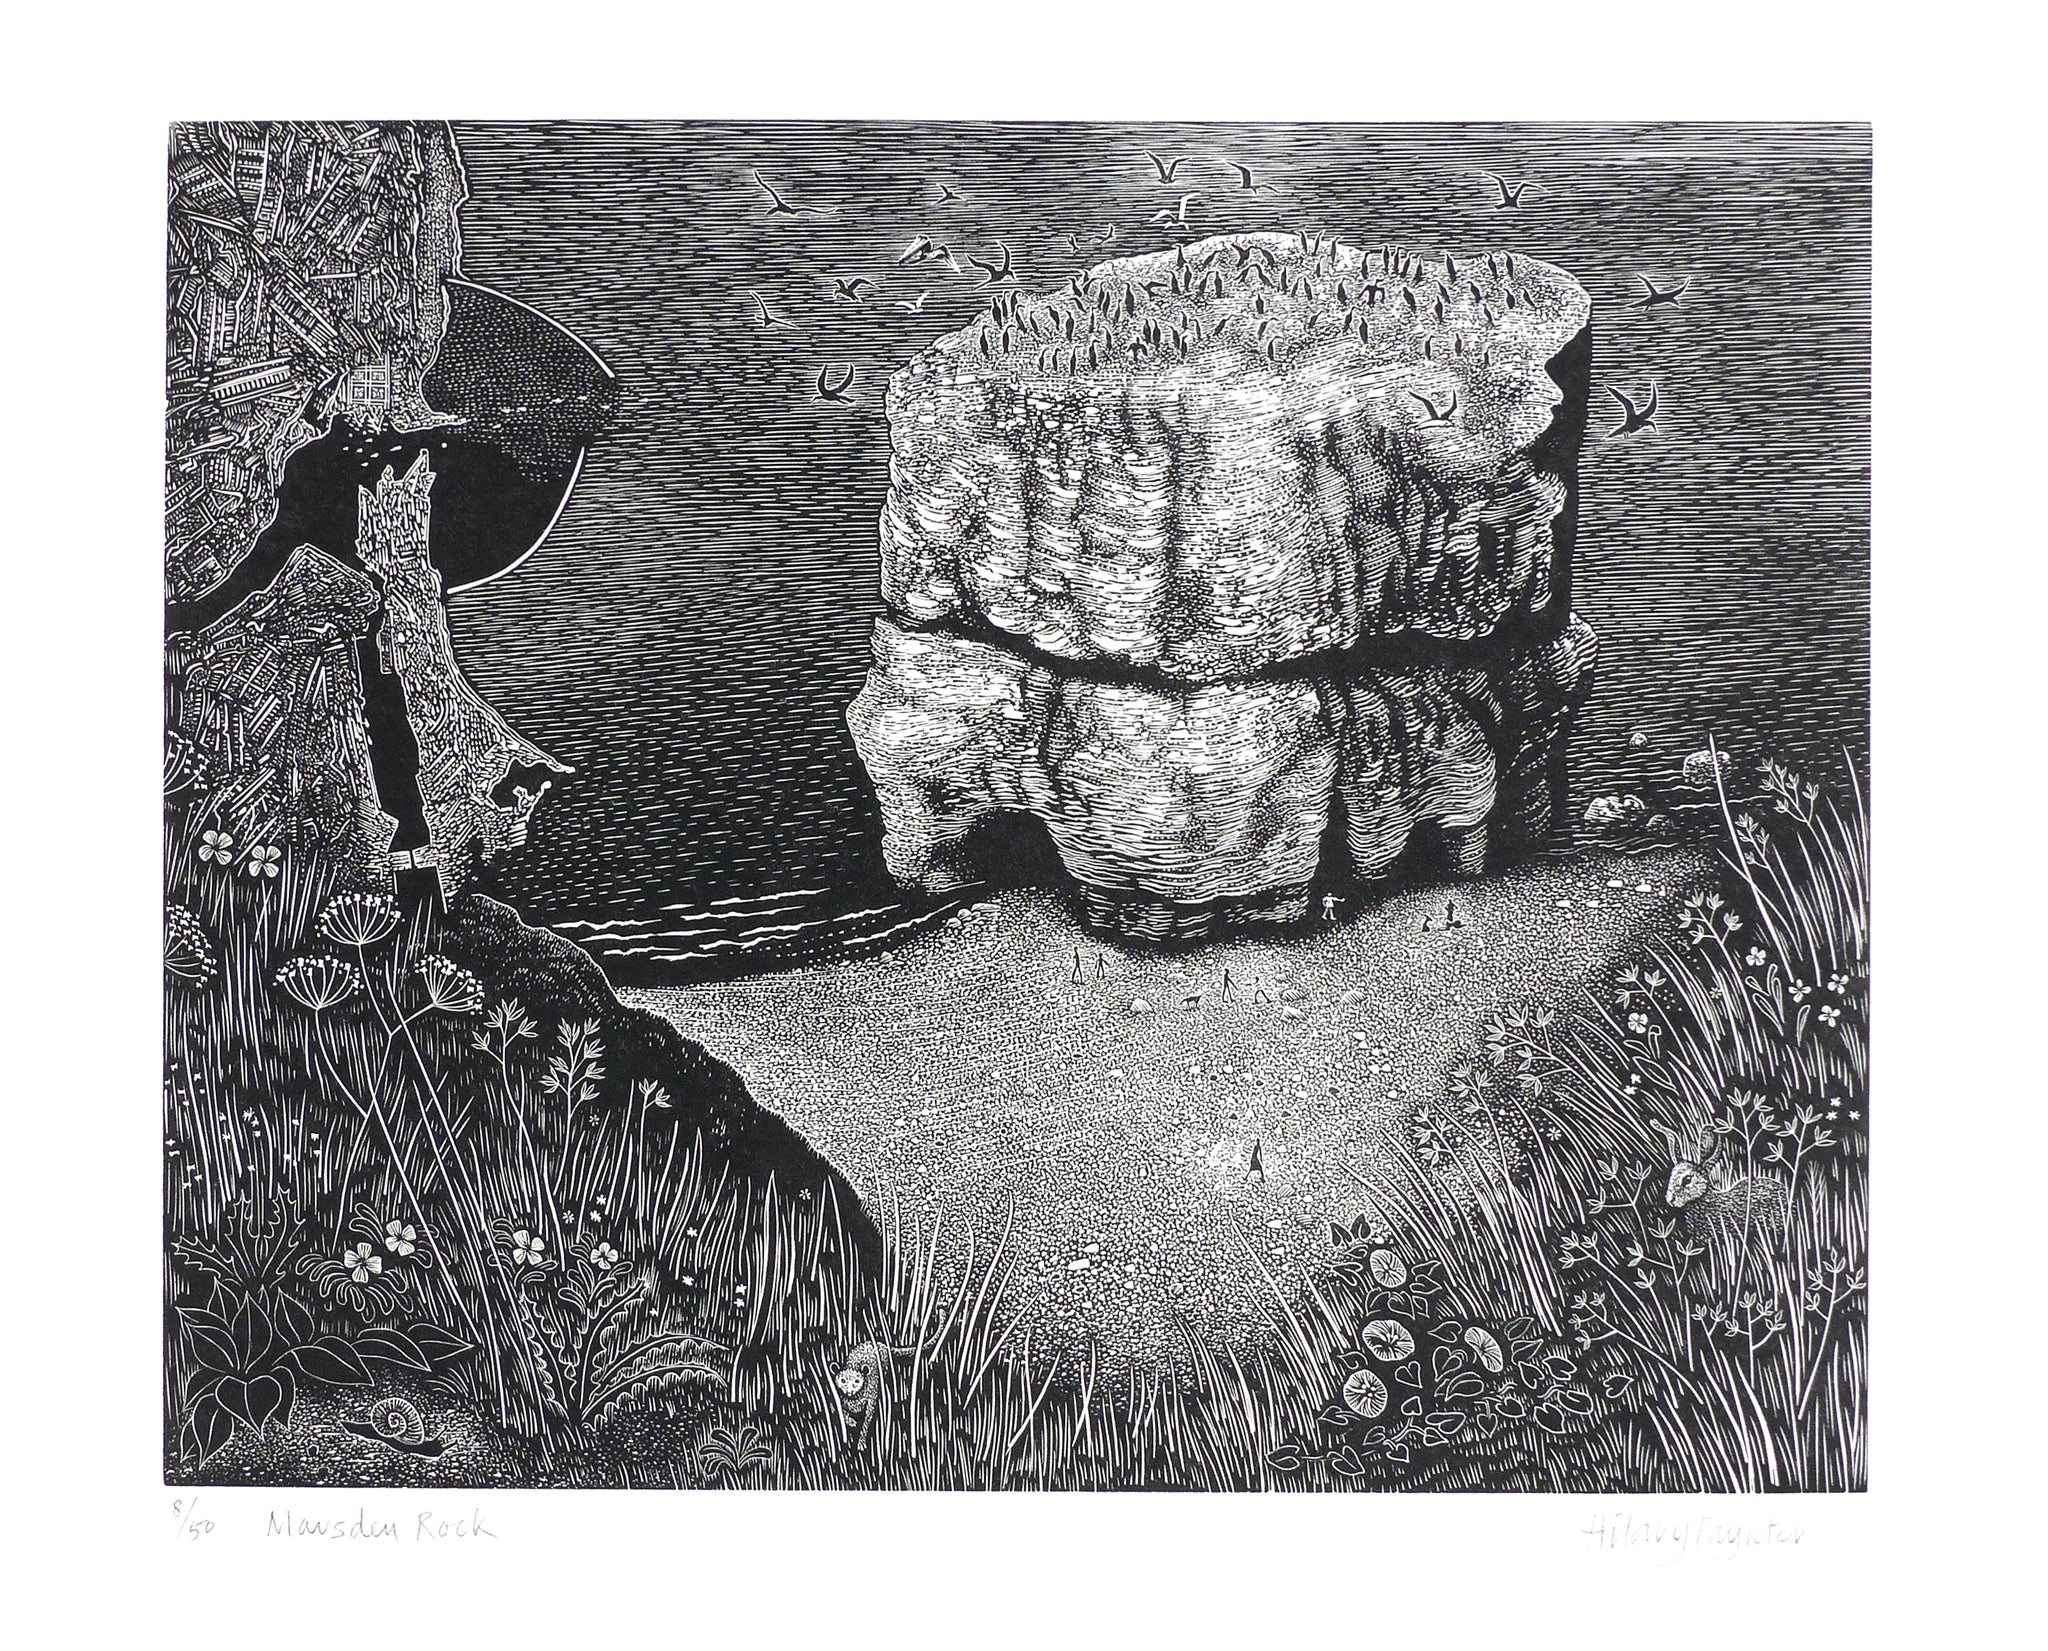 Hilary Paynter Wood Engraving: Marsden Rock